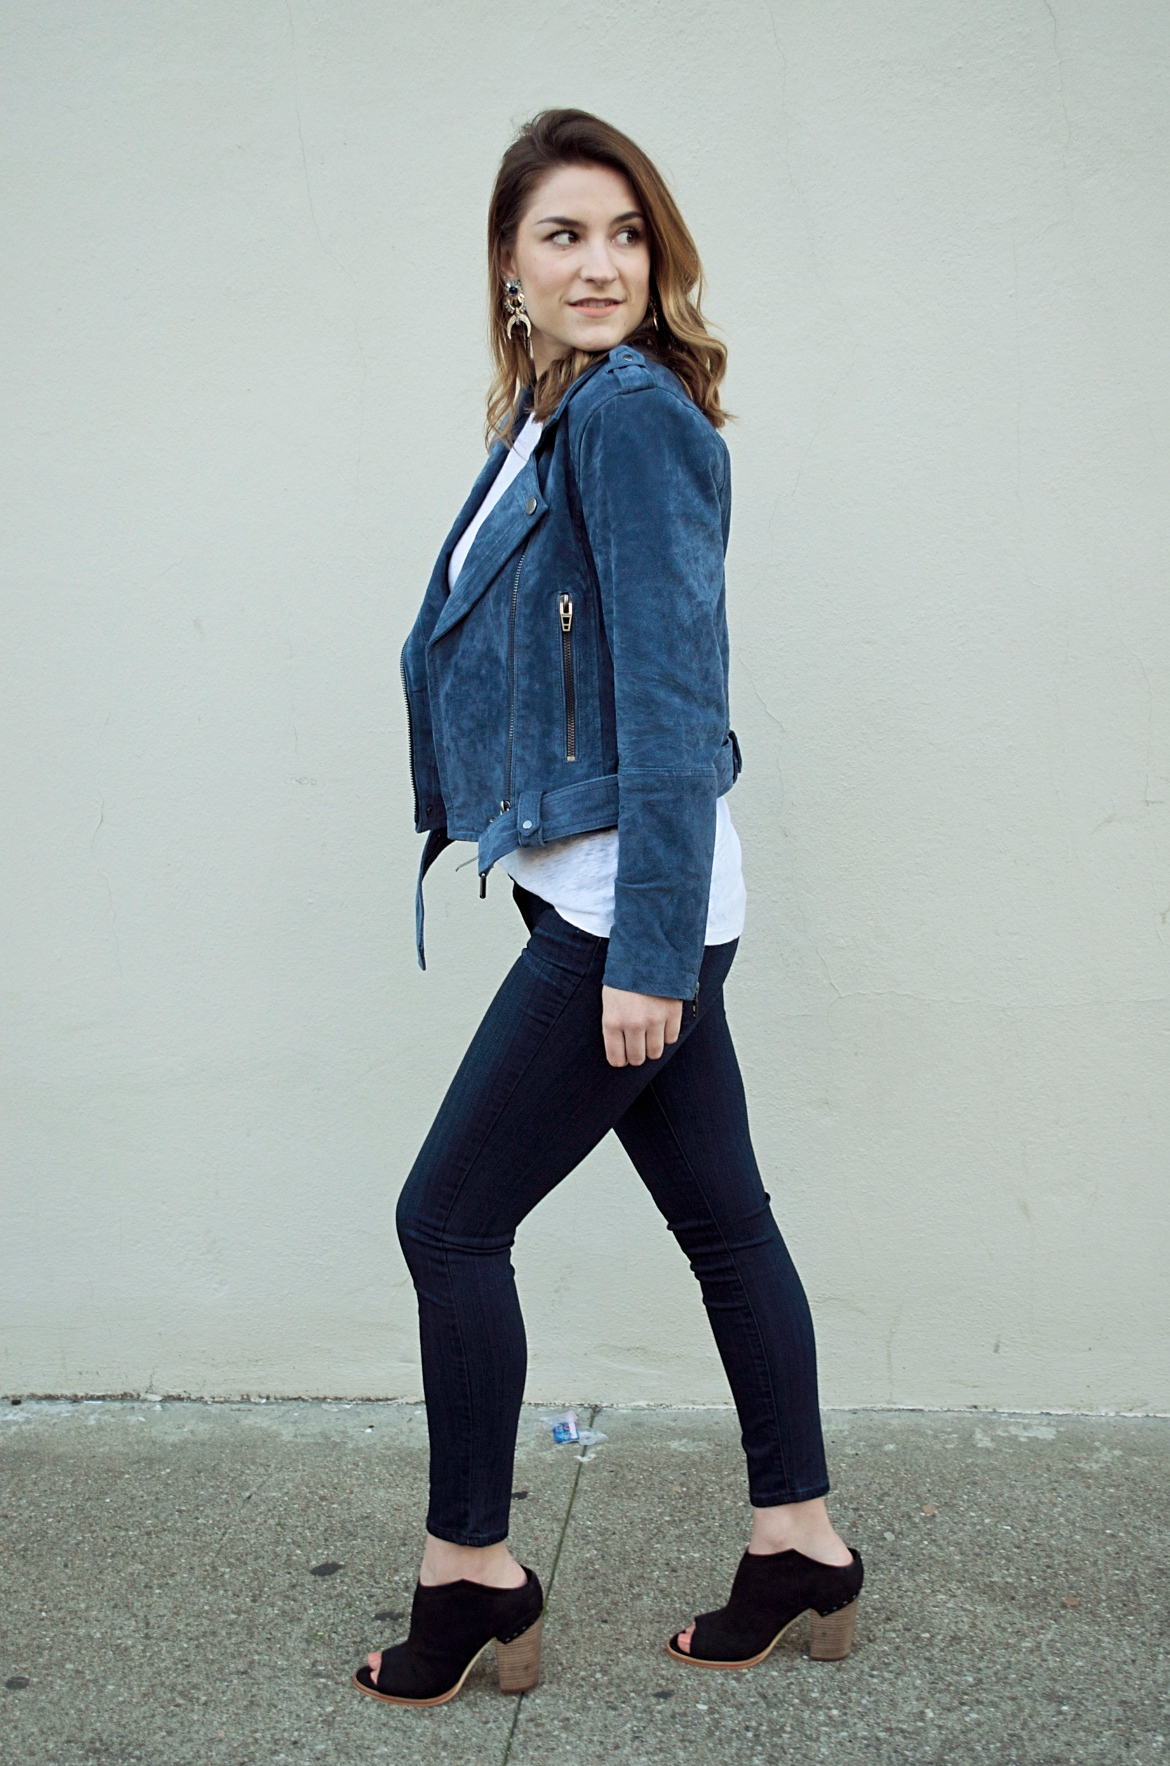 blanknyc-suede-jacket-outfit